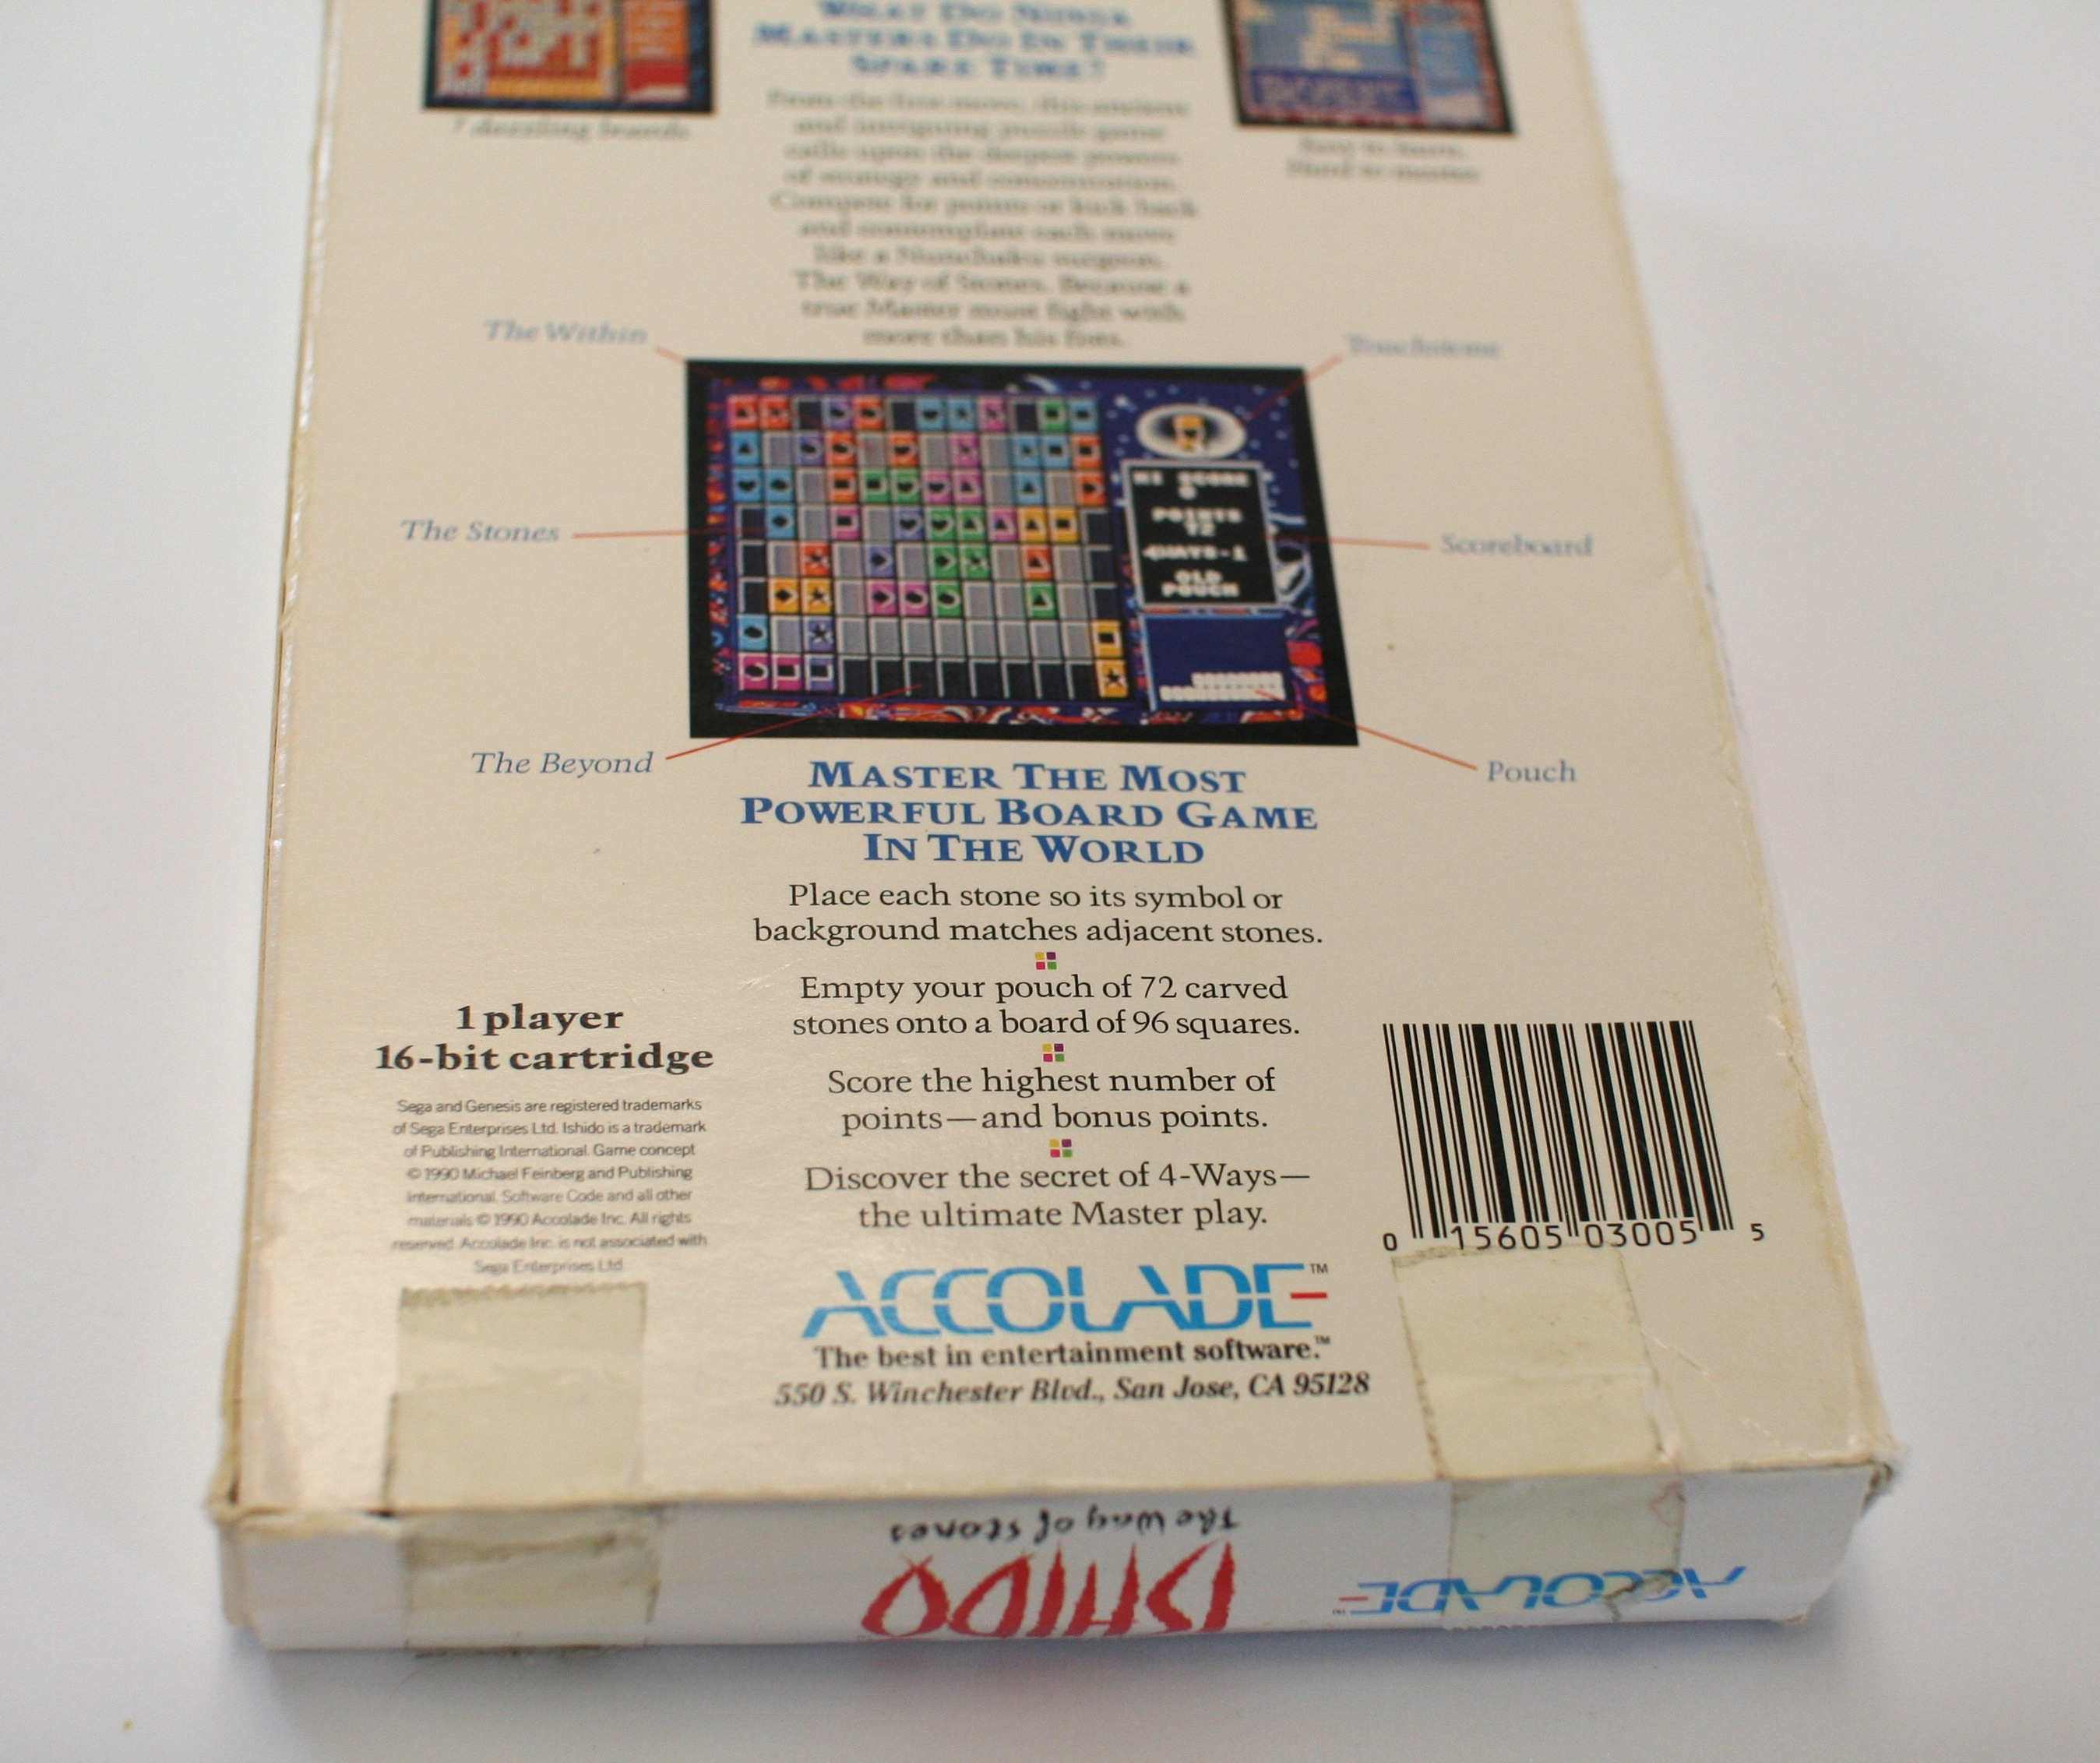 accolade v sega 4: accolade made their own games, which did not replace those made by sega, and the benefit to consumers all weighed in d's favor essentially: where disassembly is the only way to gain access to the ideas and functional elements embodied in a copyrighted software program, and where there is a legitimate reason for seeking such access .